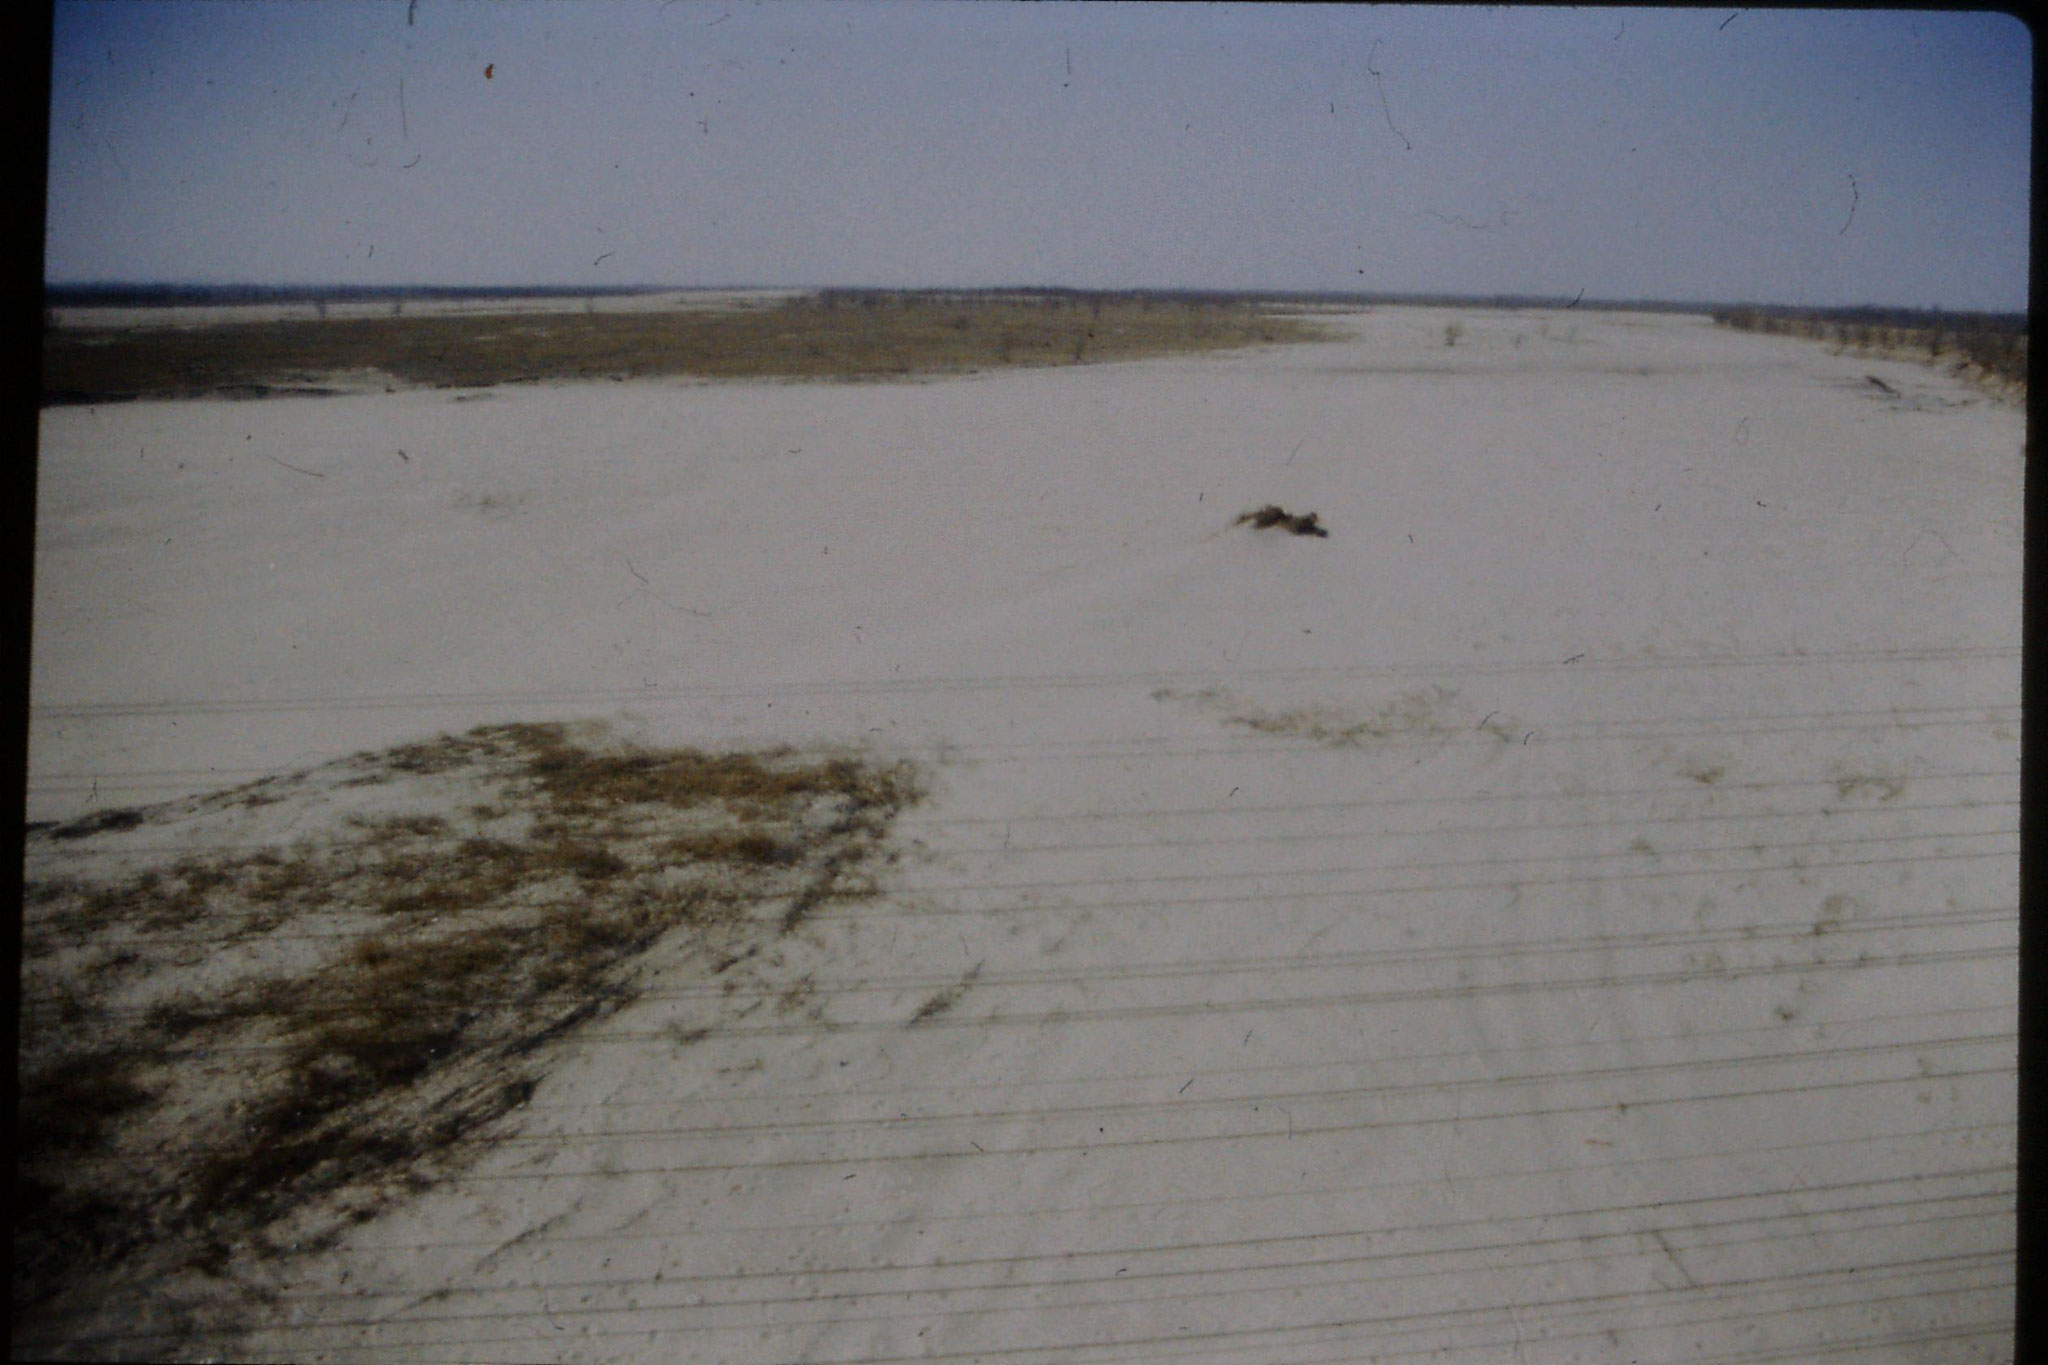 7/3/1989: 6: Journey Xian to Beijing, 1455 dry river bed after Shizuazheng